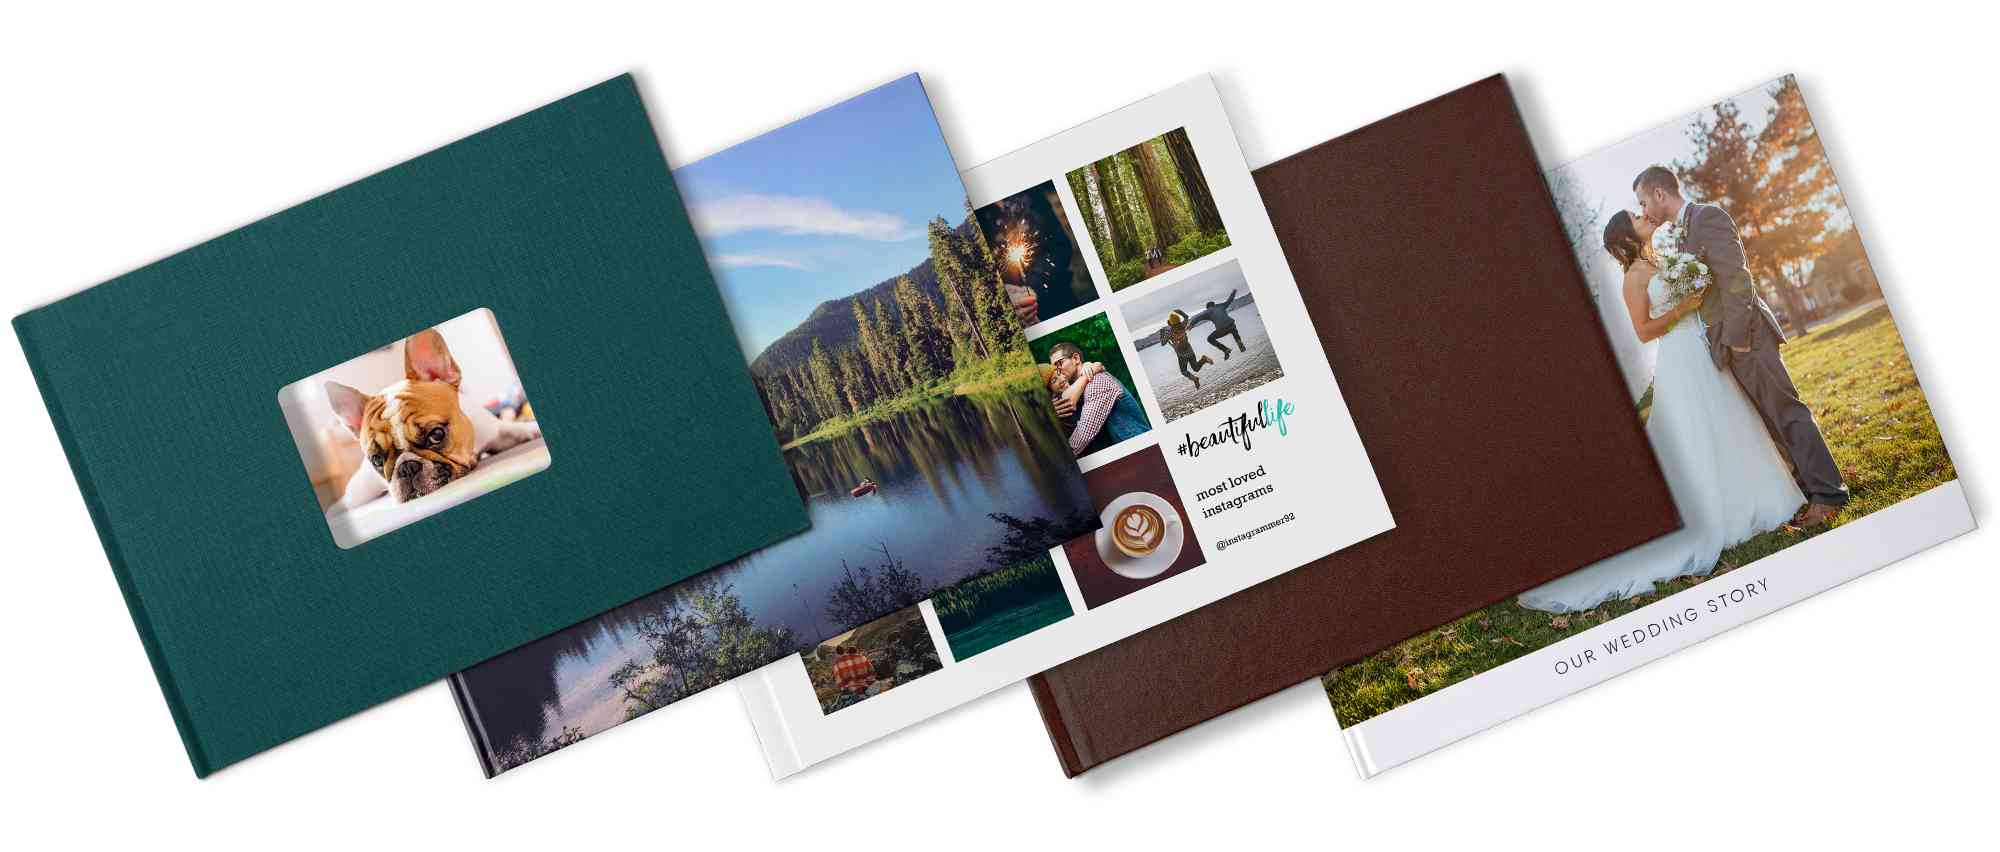 Different types of custom photo books available on Mixbook